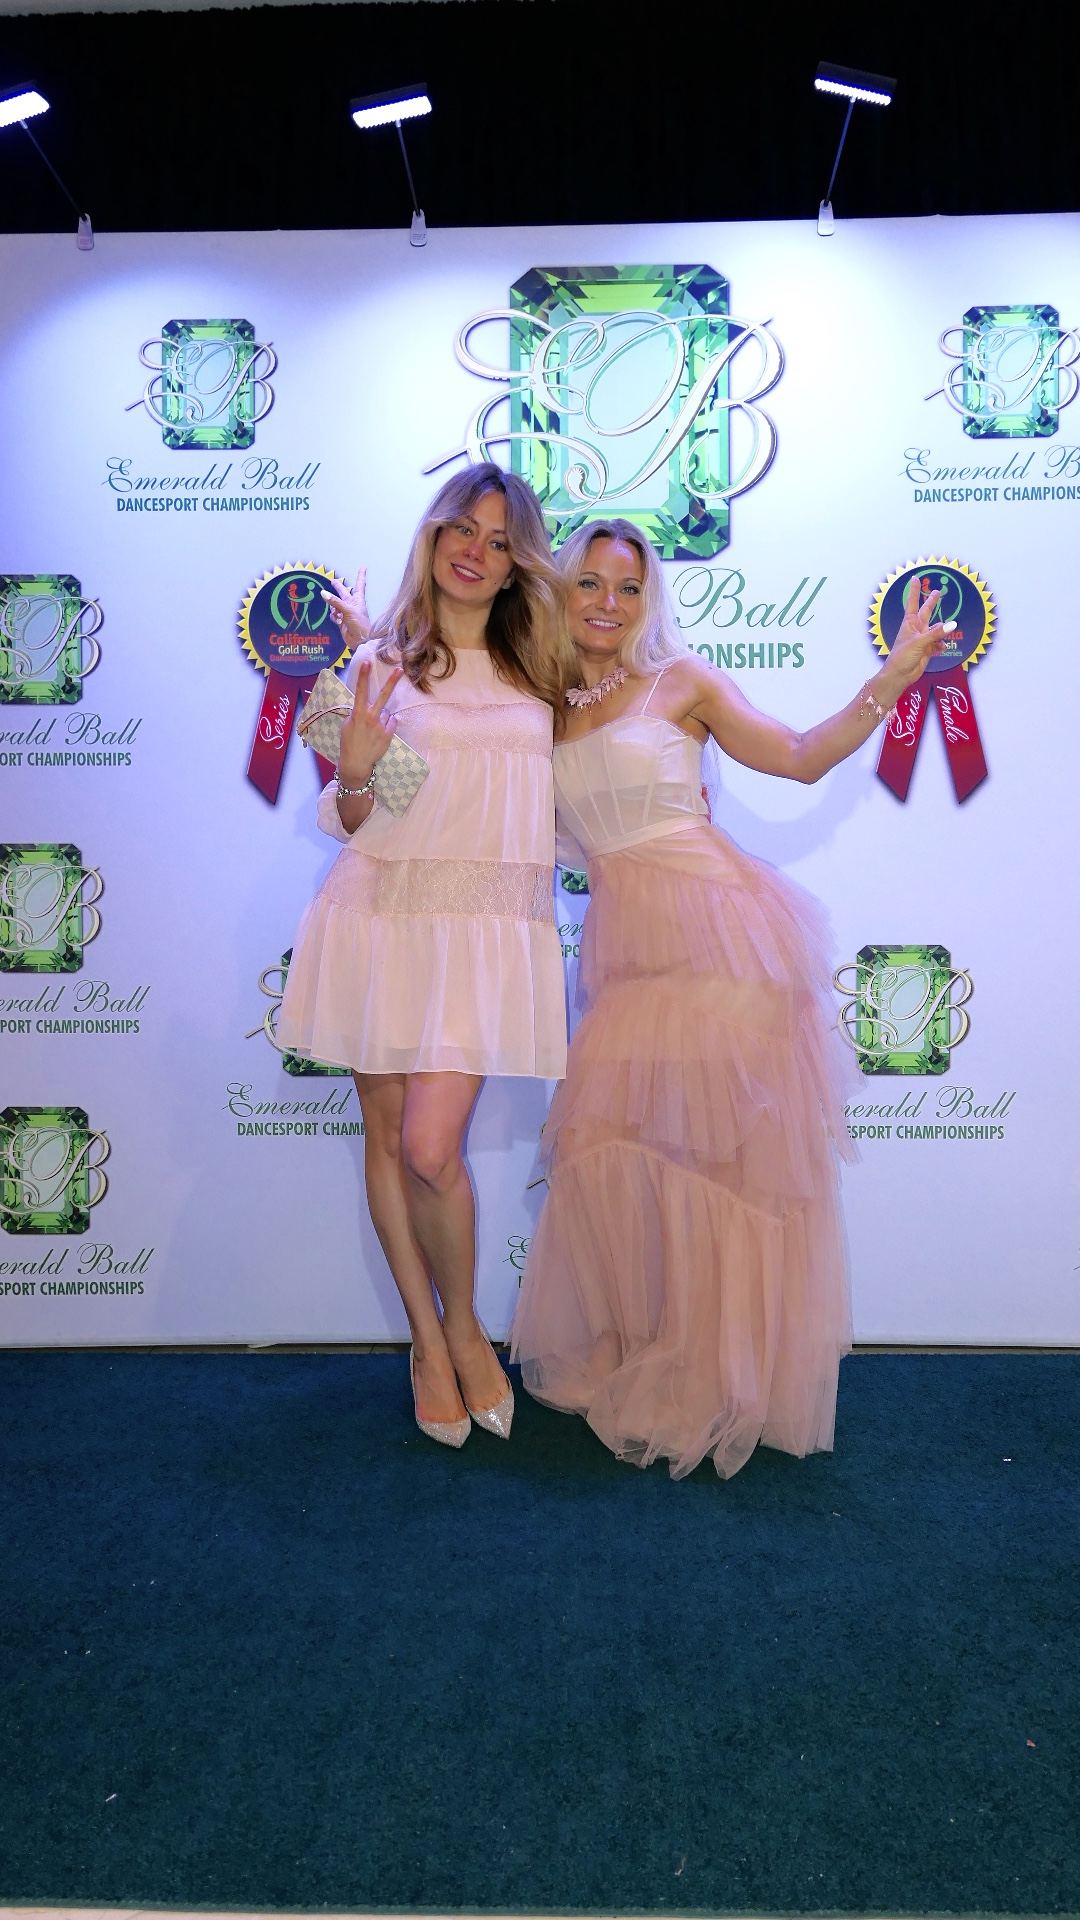 beautiful girls @emeraldball.jpg